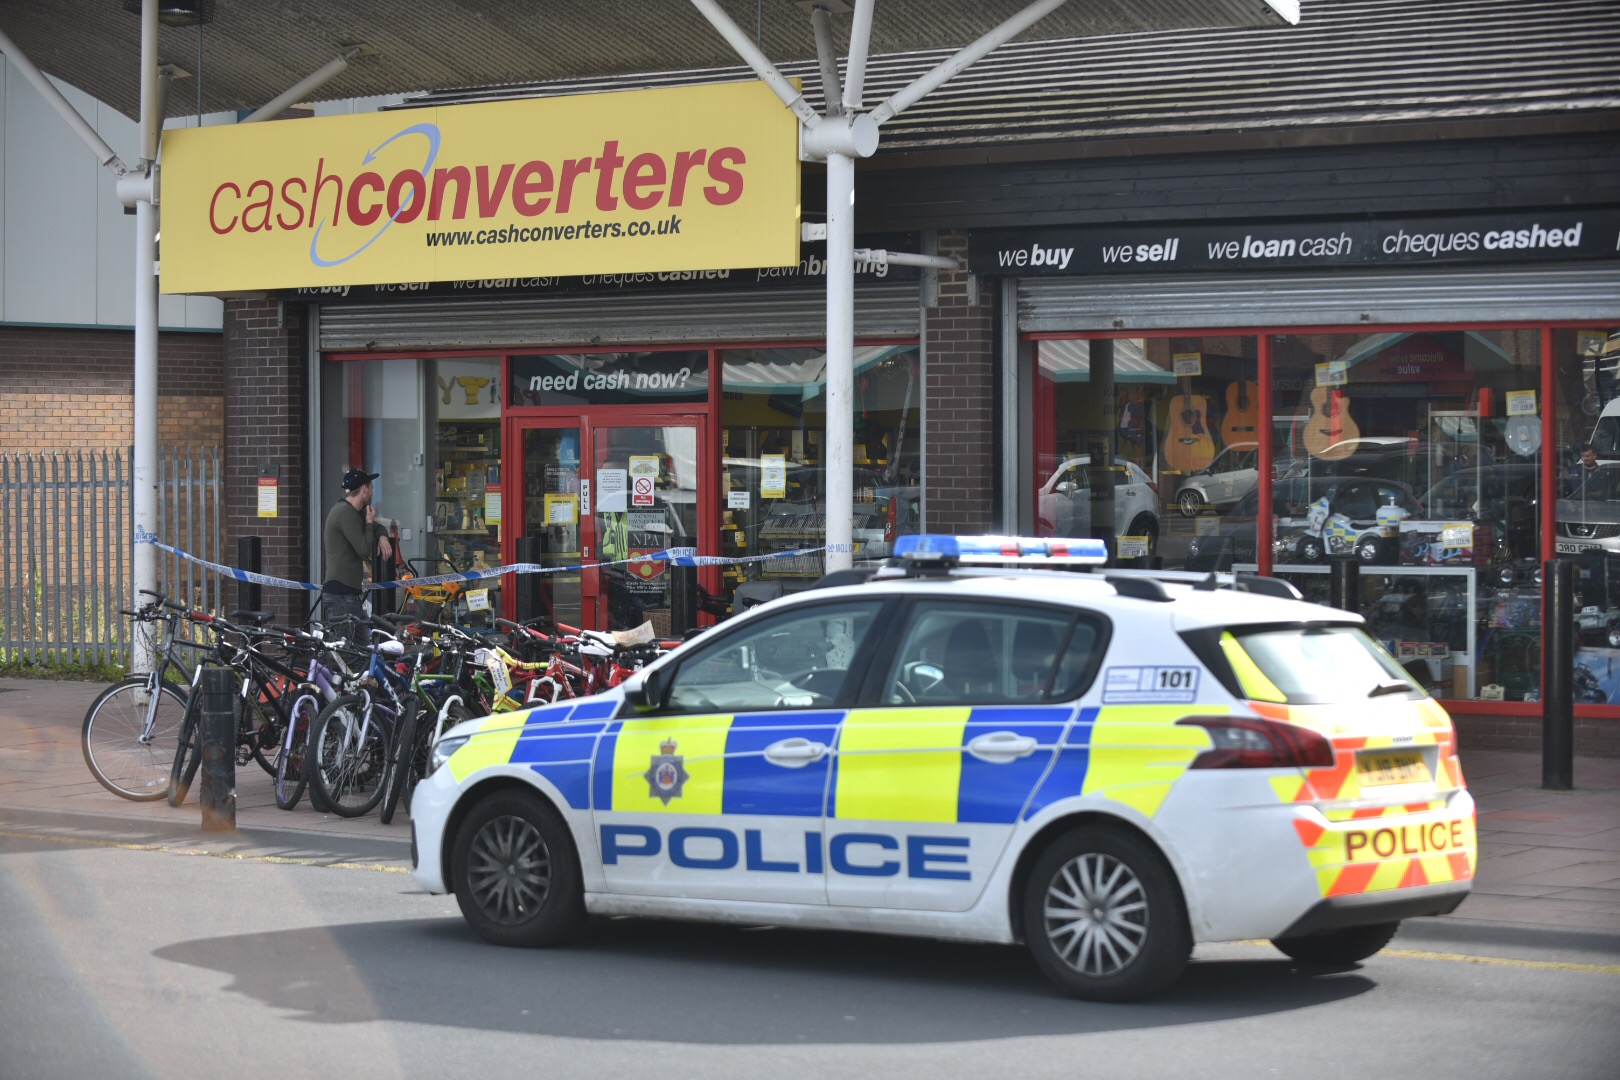 Police appeal for information on two men after Cash Converters raid